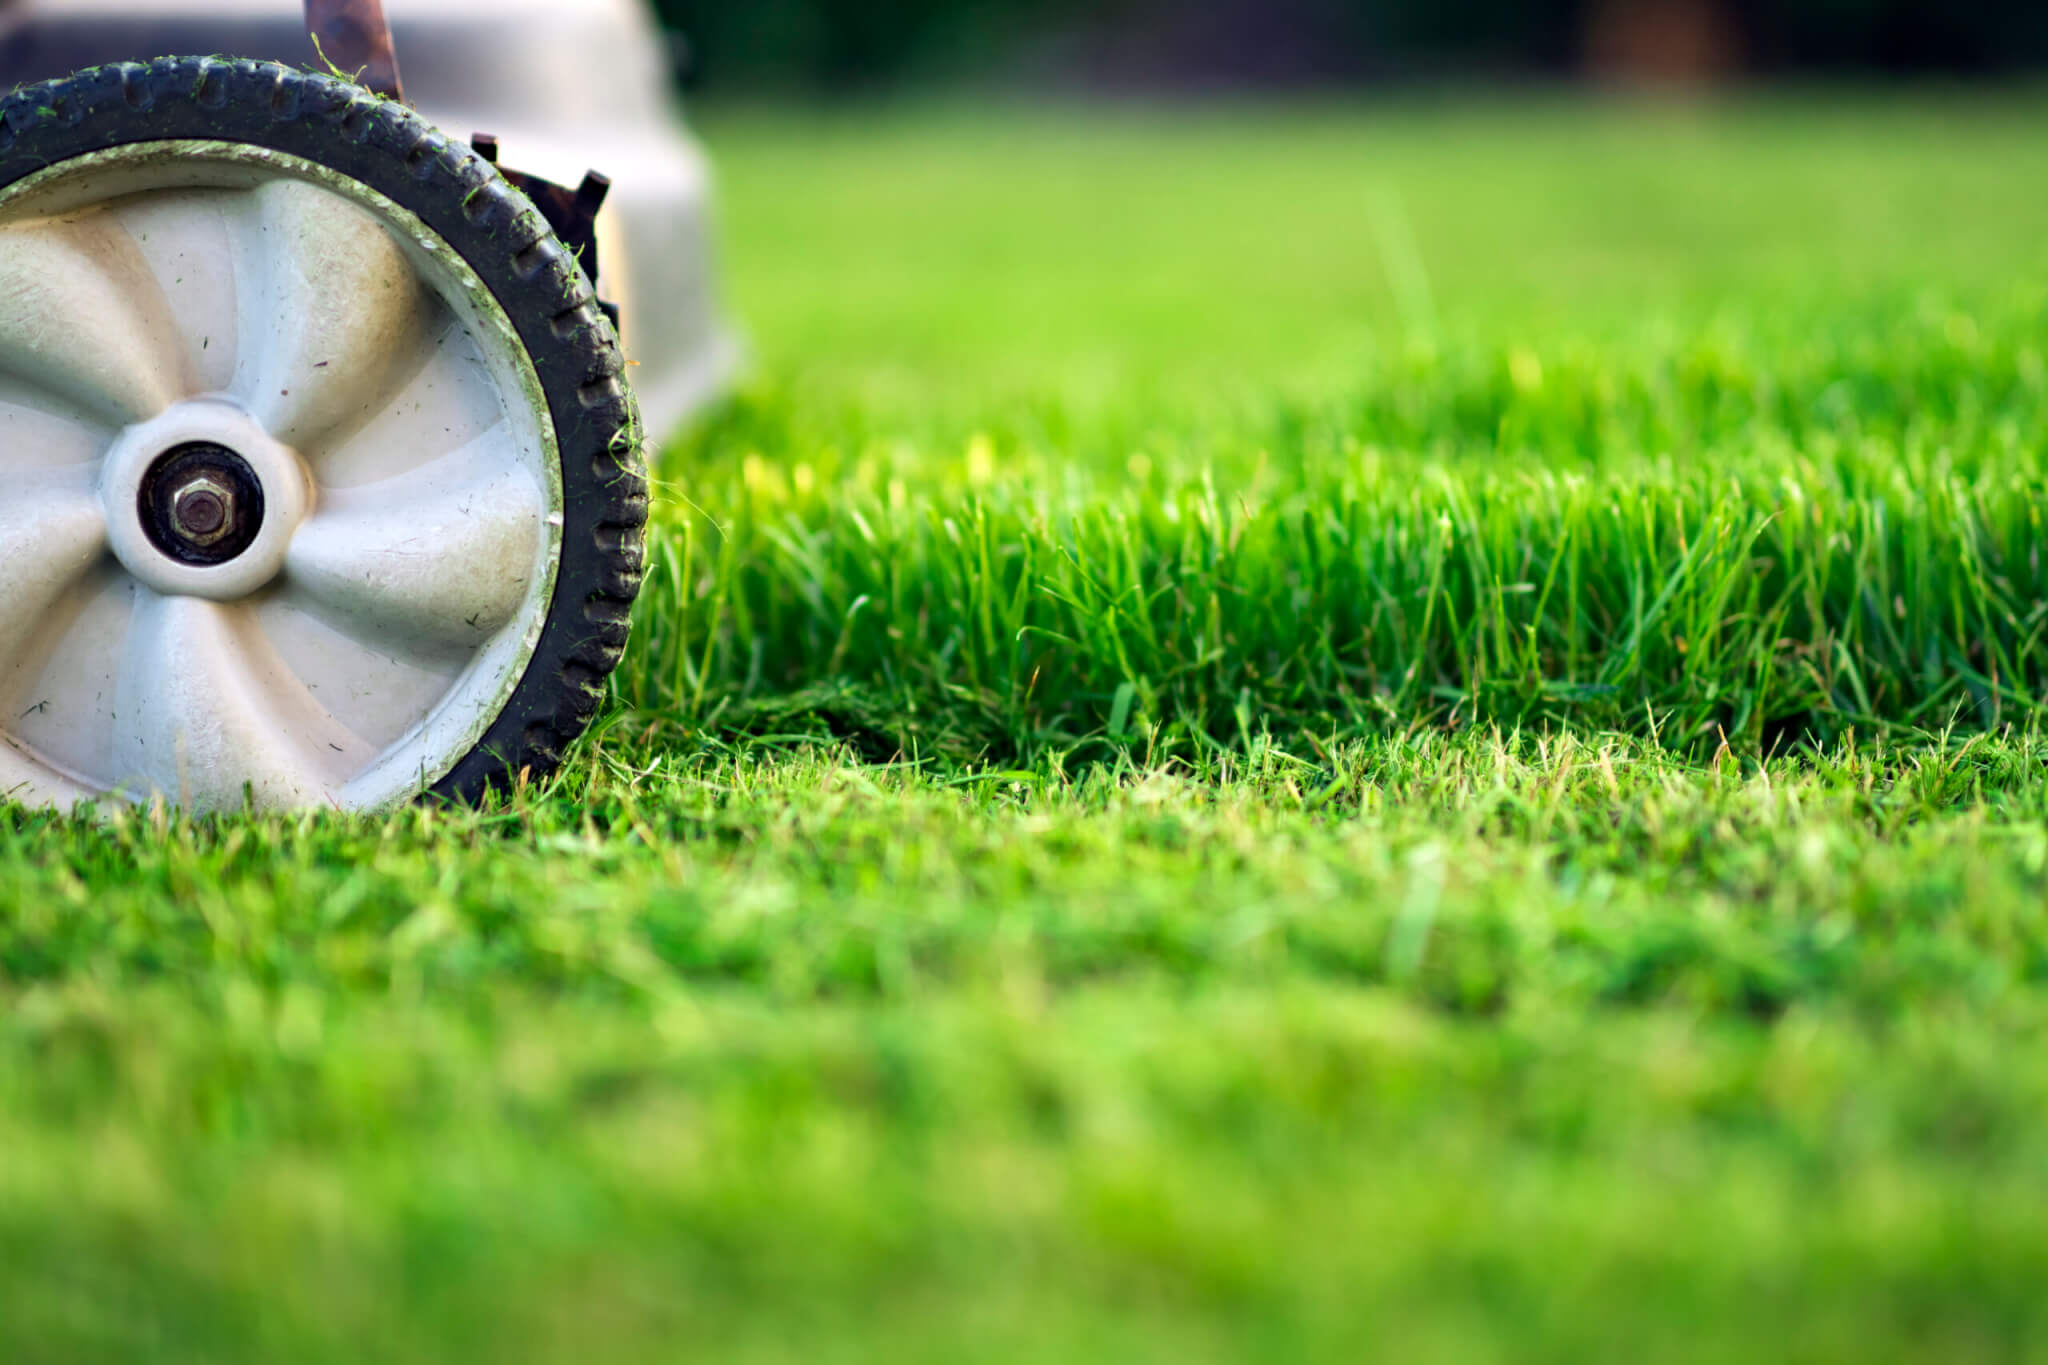 Mower wheel on grass